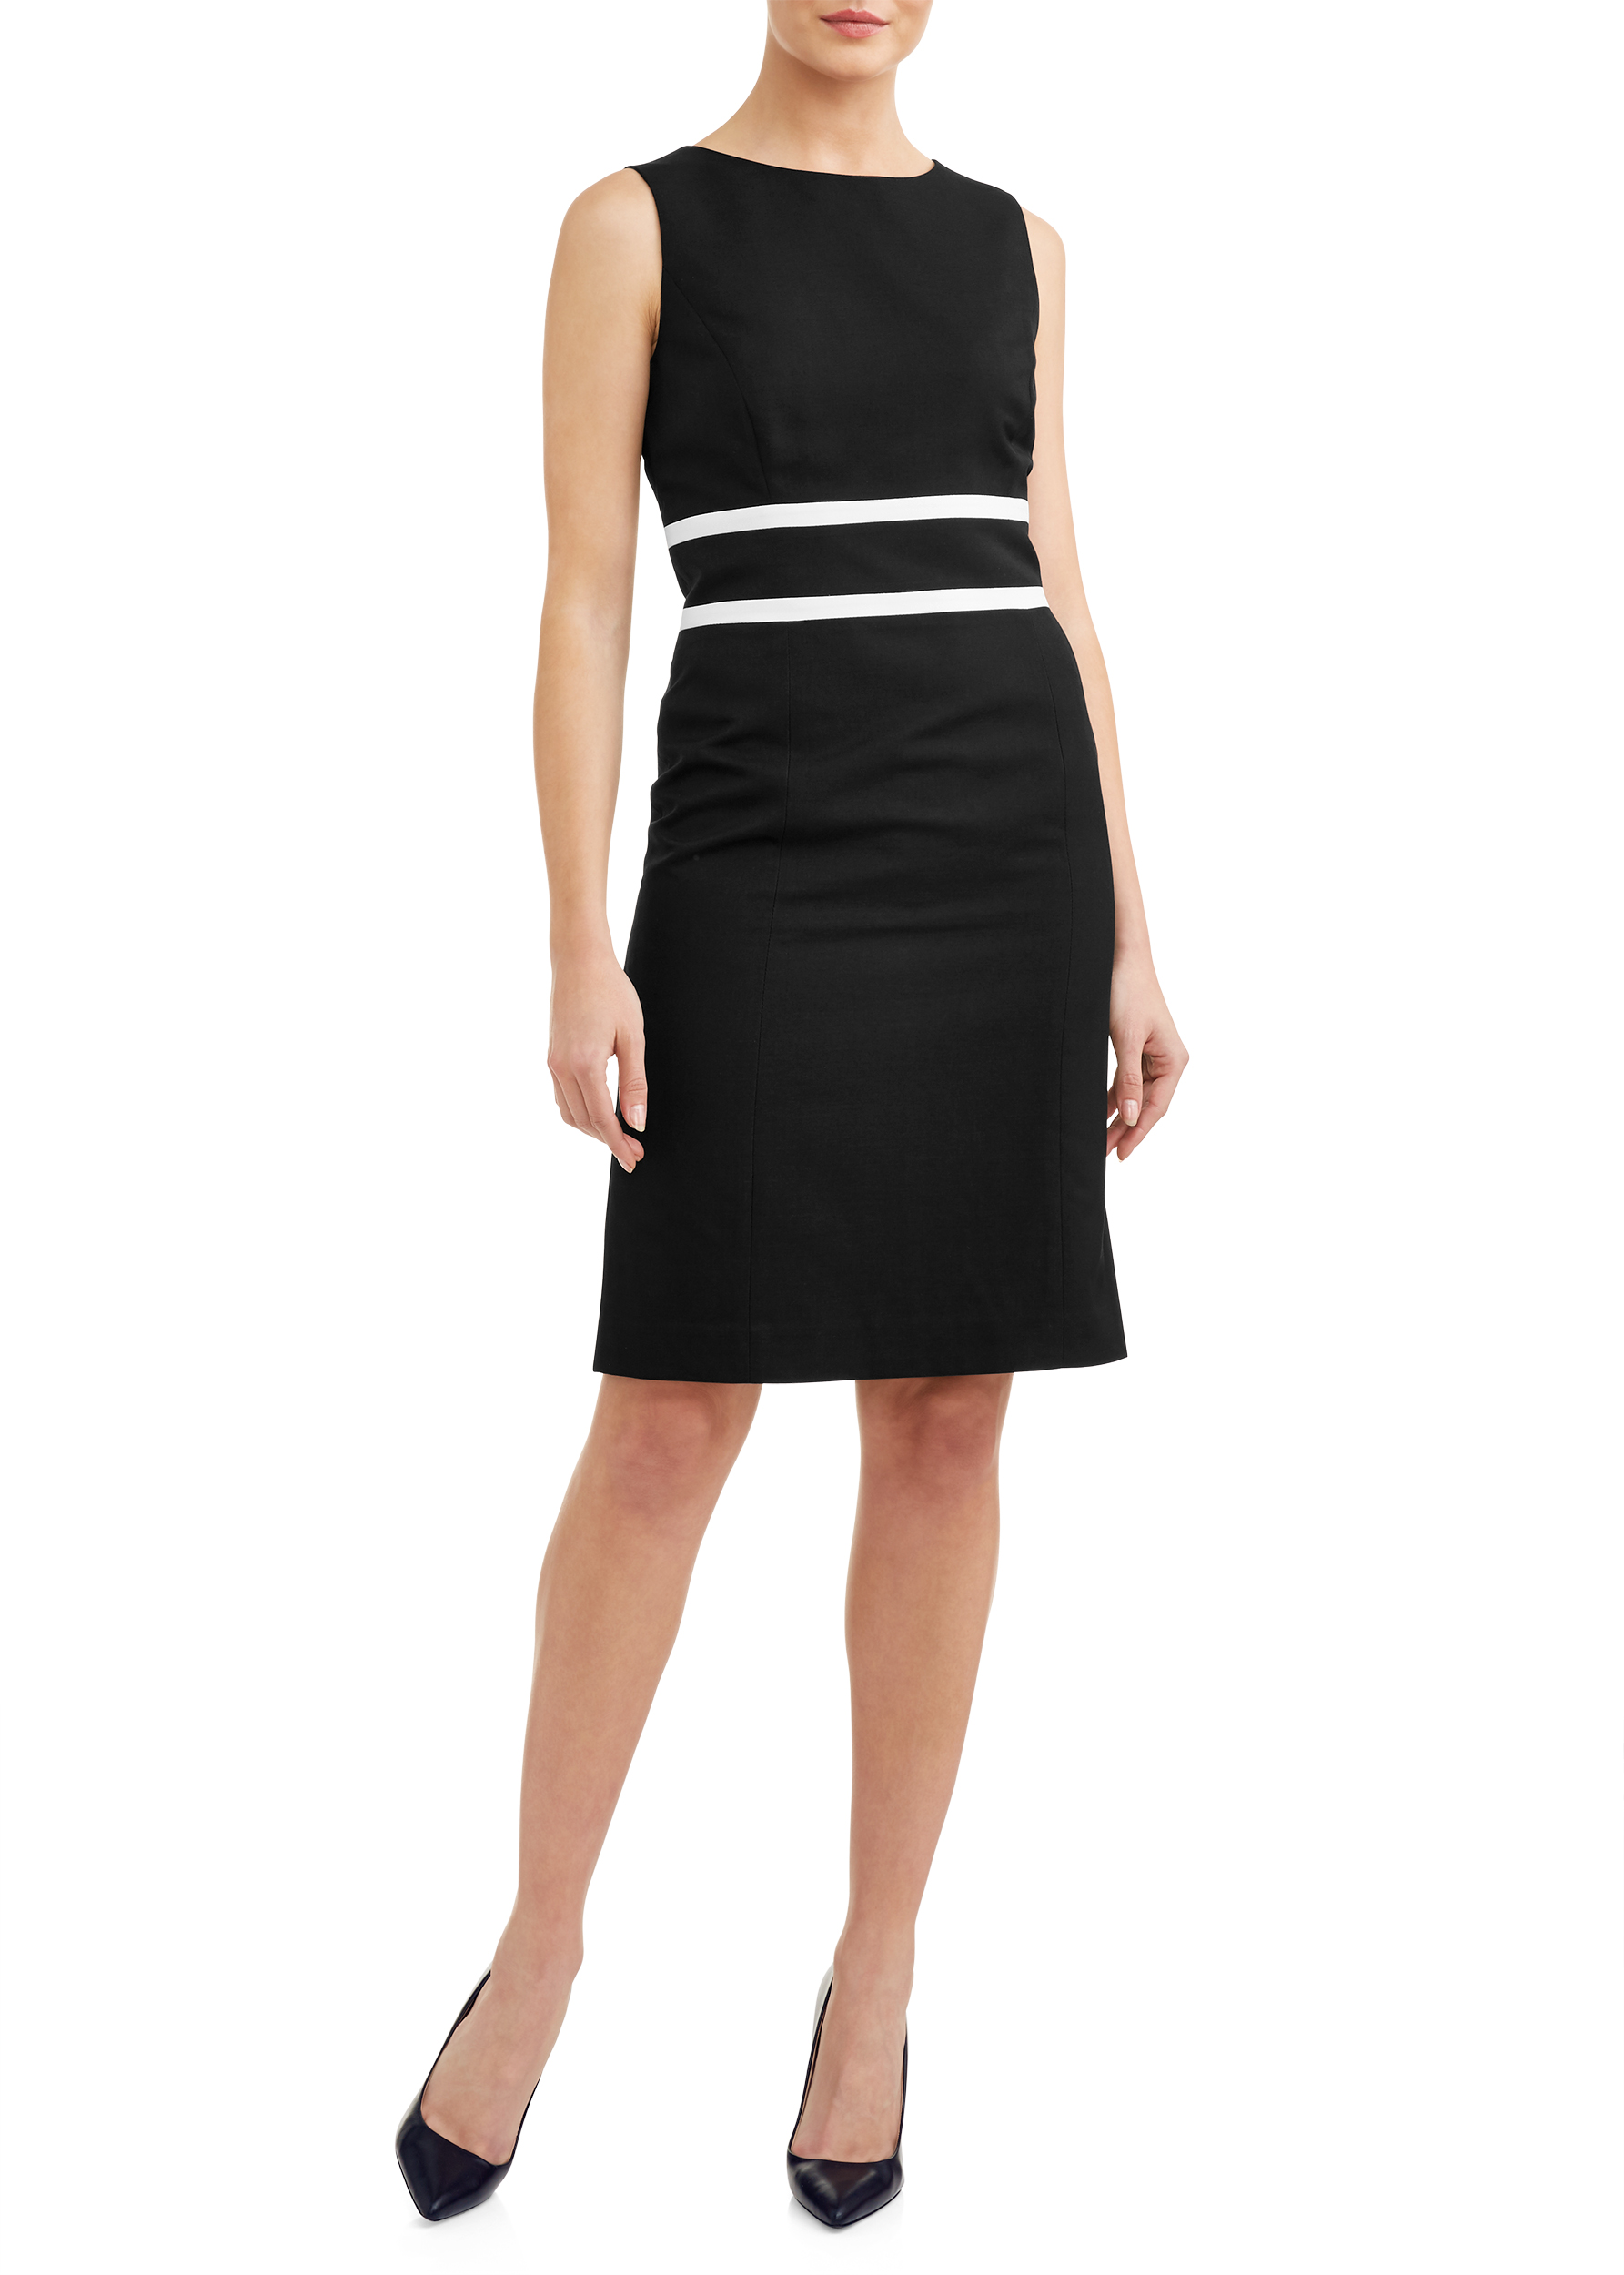 Women's Essential Contrast Dress